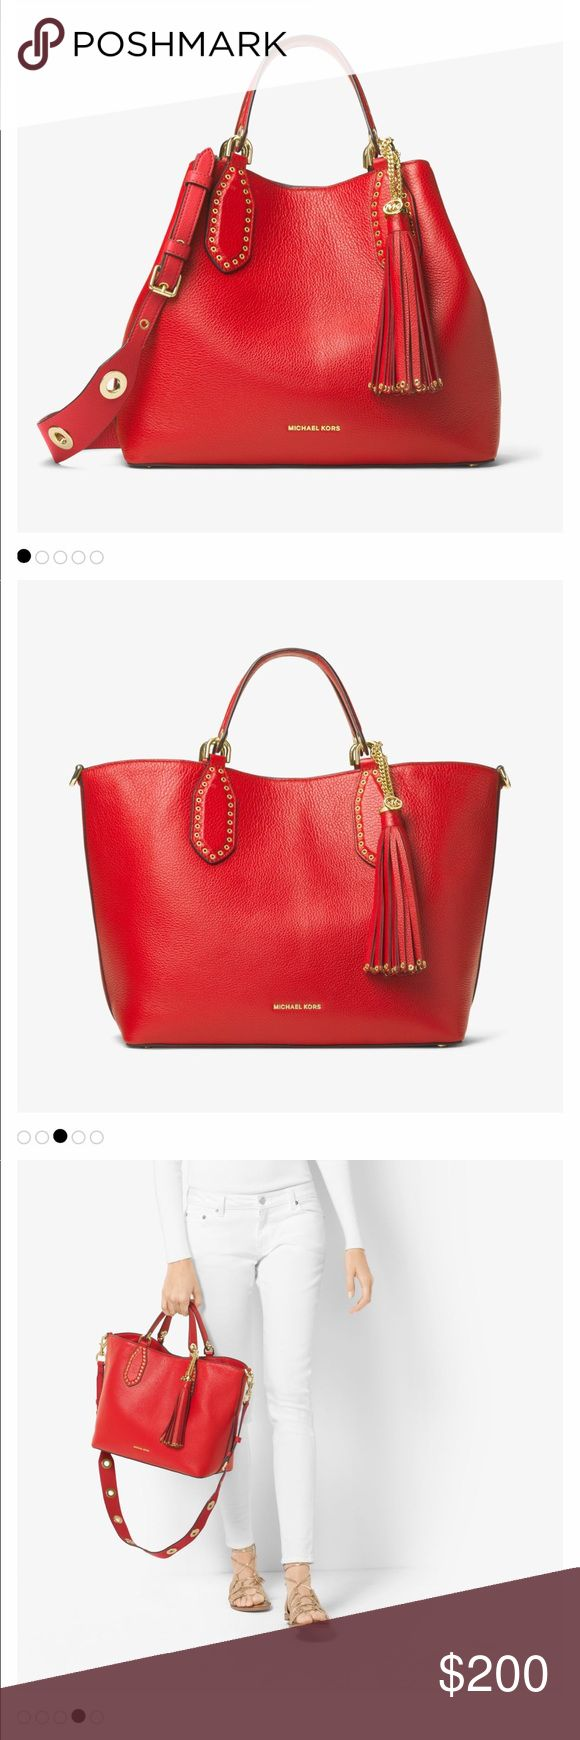 "Bright Red Michael Kors Brooklyn Bag Like new very gently used. Comes with all tags and dust bag. Still sold in stores for $500. • 100% Pebbled Leather  • Gold-Tone Hardware  • 17""W X 11""H X 5.5""D  • Handle Drop: 4.5""  • Adjustable Strap: 16.5""-20""  • Interior Details: Back Zip Pocket, 2 Back Slit Pockets, 6 Front Slit Pockets  • Lining: 100% Polyester  • Magnetic Snap Fastening  • Imported Michael Kors Bags"